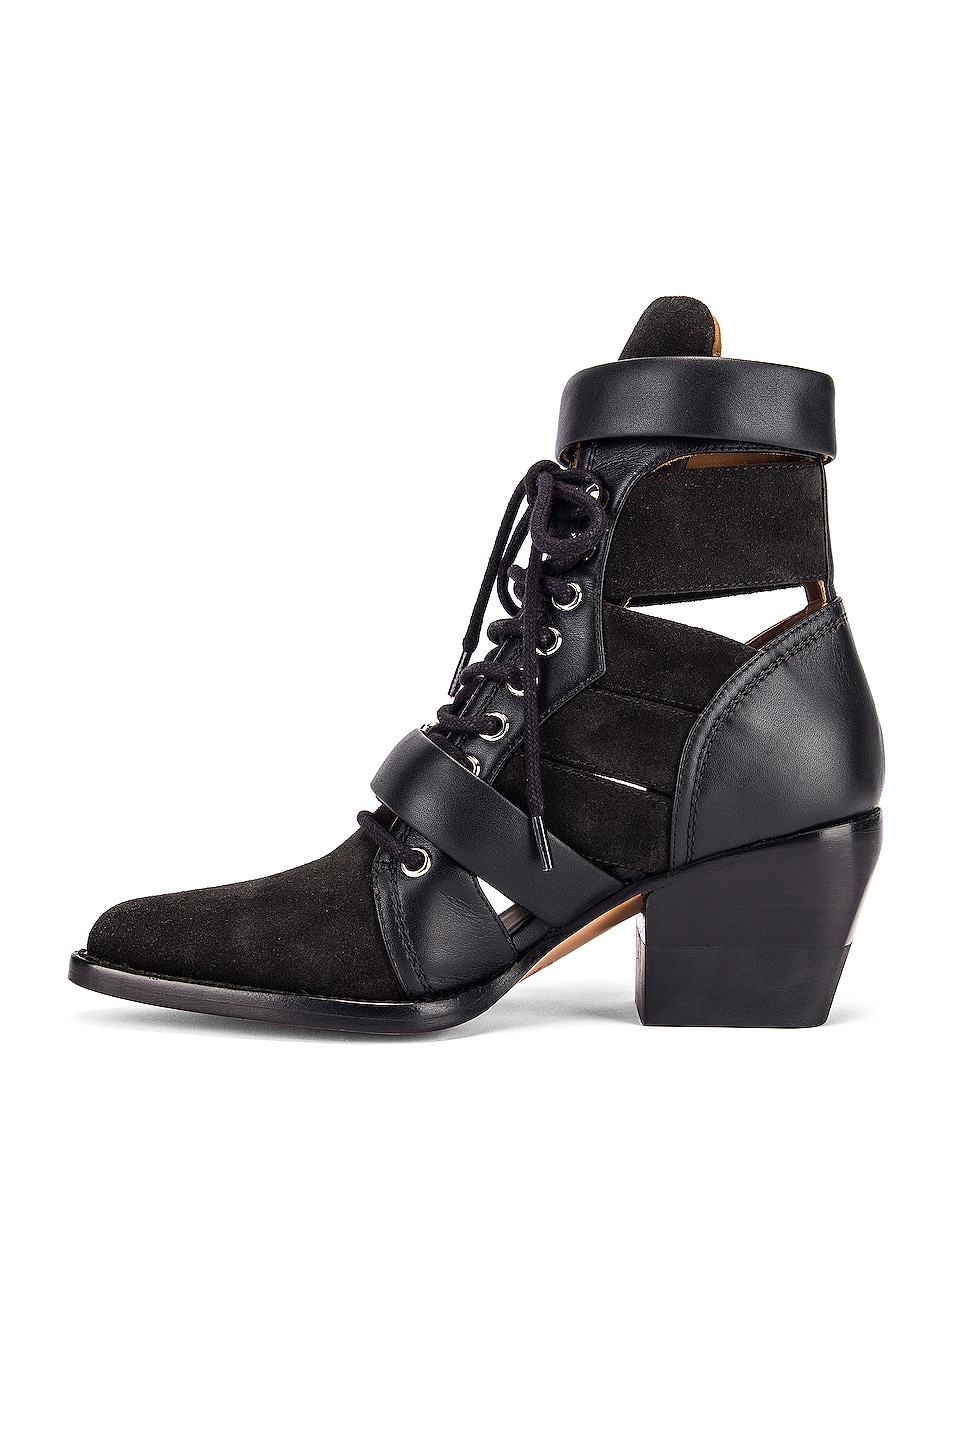 Image 5 of Chloe Lace Up Buckle Boots in Charcoal Black